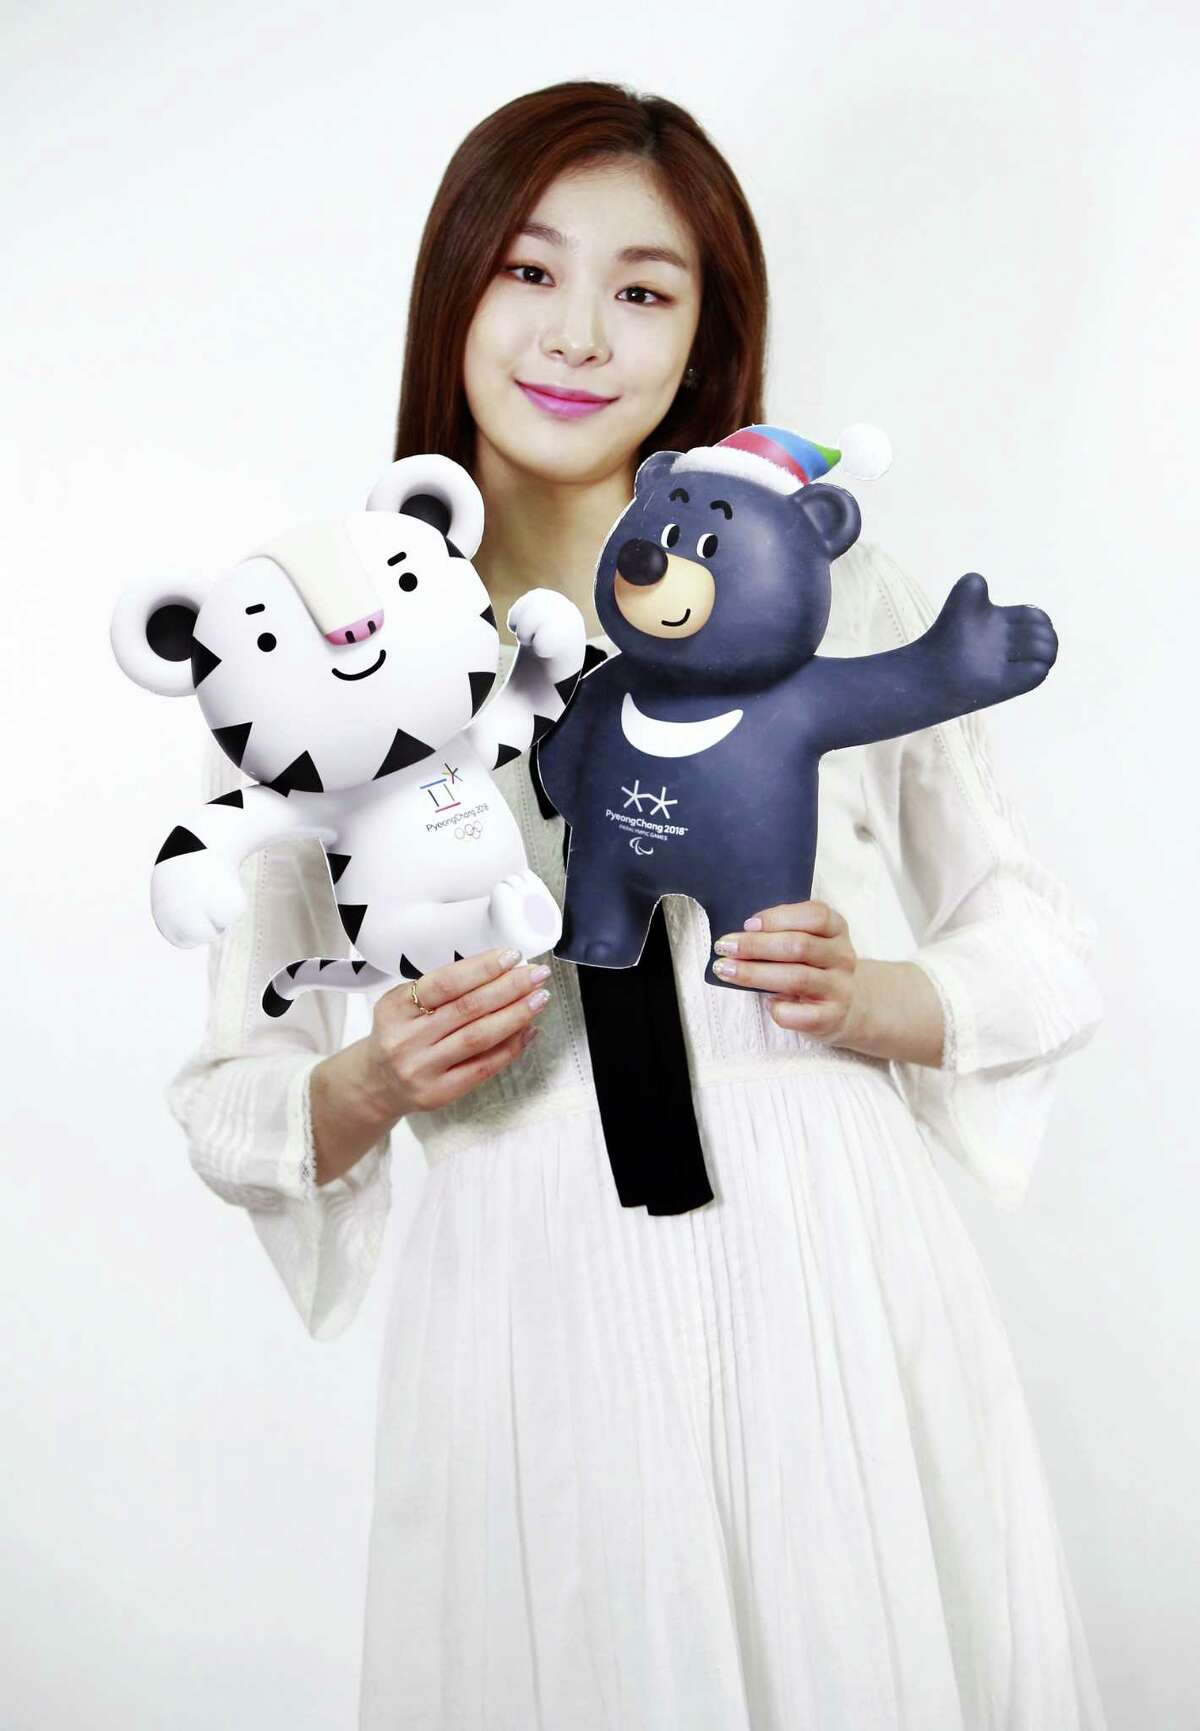 In this photo provided by the PyeongChang Organizing Committee for the 2018 Olympic & Paralympic Winter Games, a former South Korean Olympic figure skater Yuna Kim who is an honorary ambassador for the 2018 Winter Olympics, holds the cut-outs of the official mascots for the 2018 PyeongChang Olympics, named Soohorang, left, and Paralympic Winter Games, named Bandabi, right, in Seoul, South Korea on Thursday.